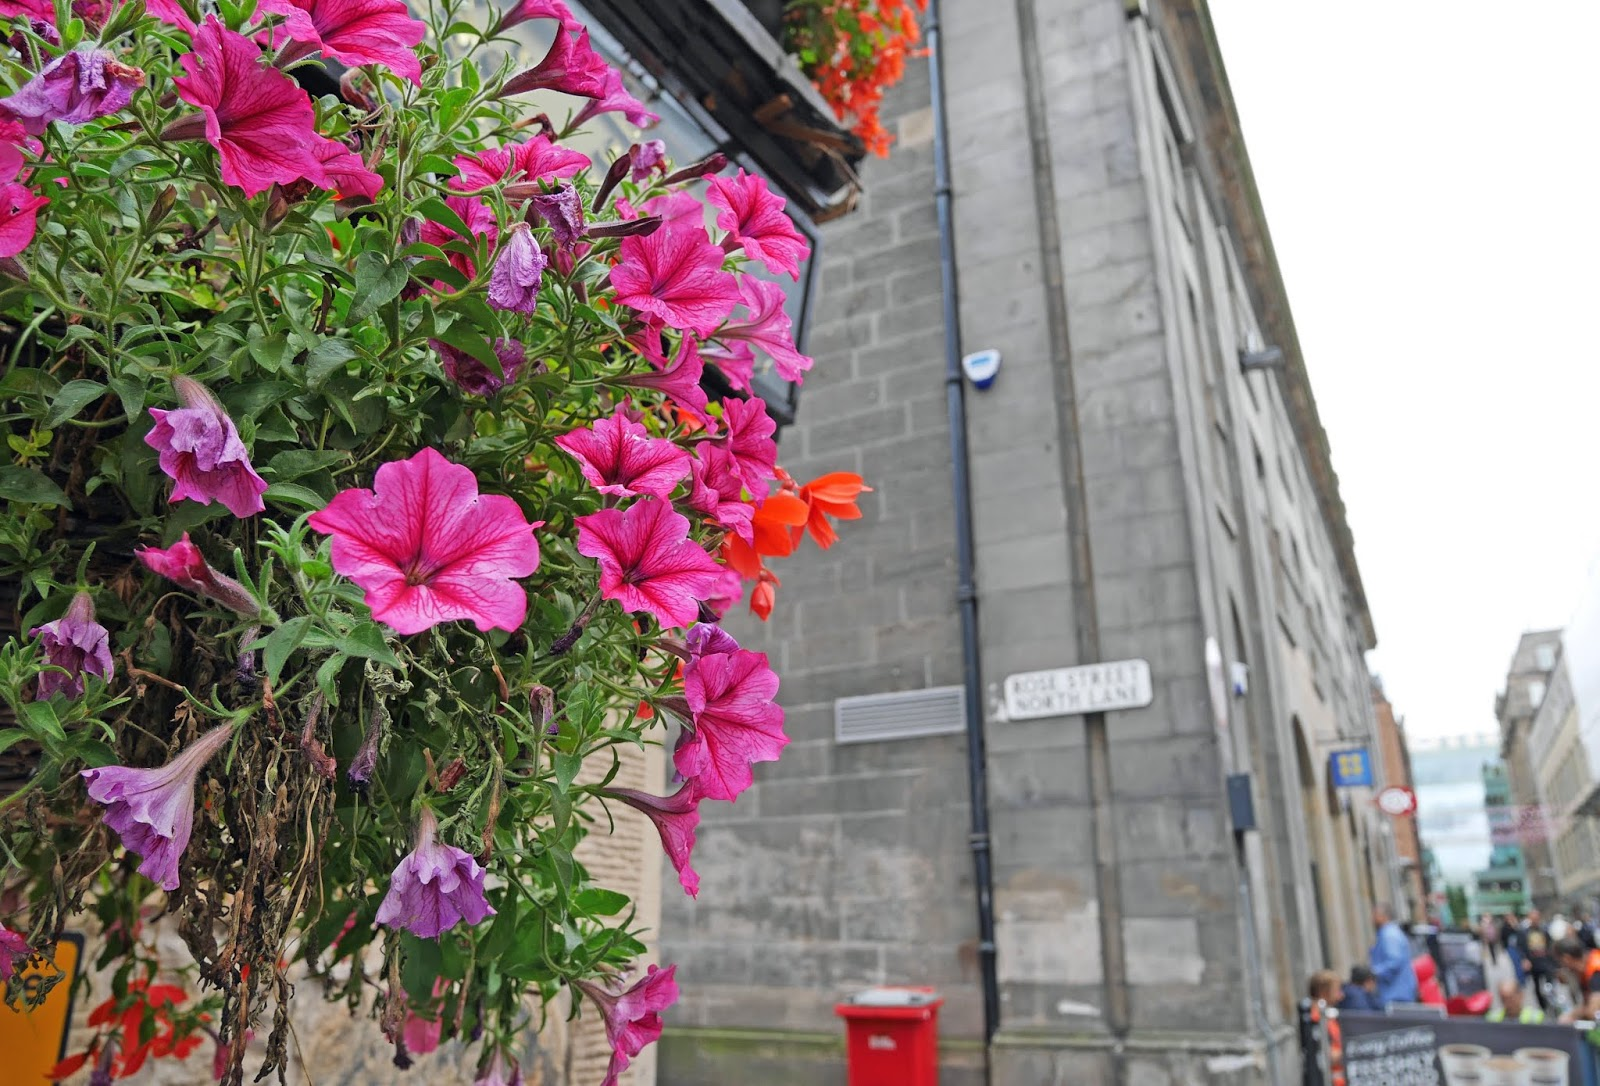 Flowers on Rose Street, Edinburgh